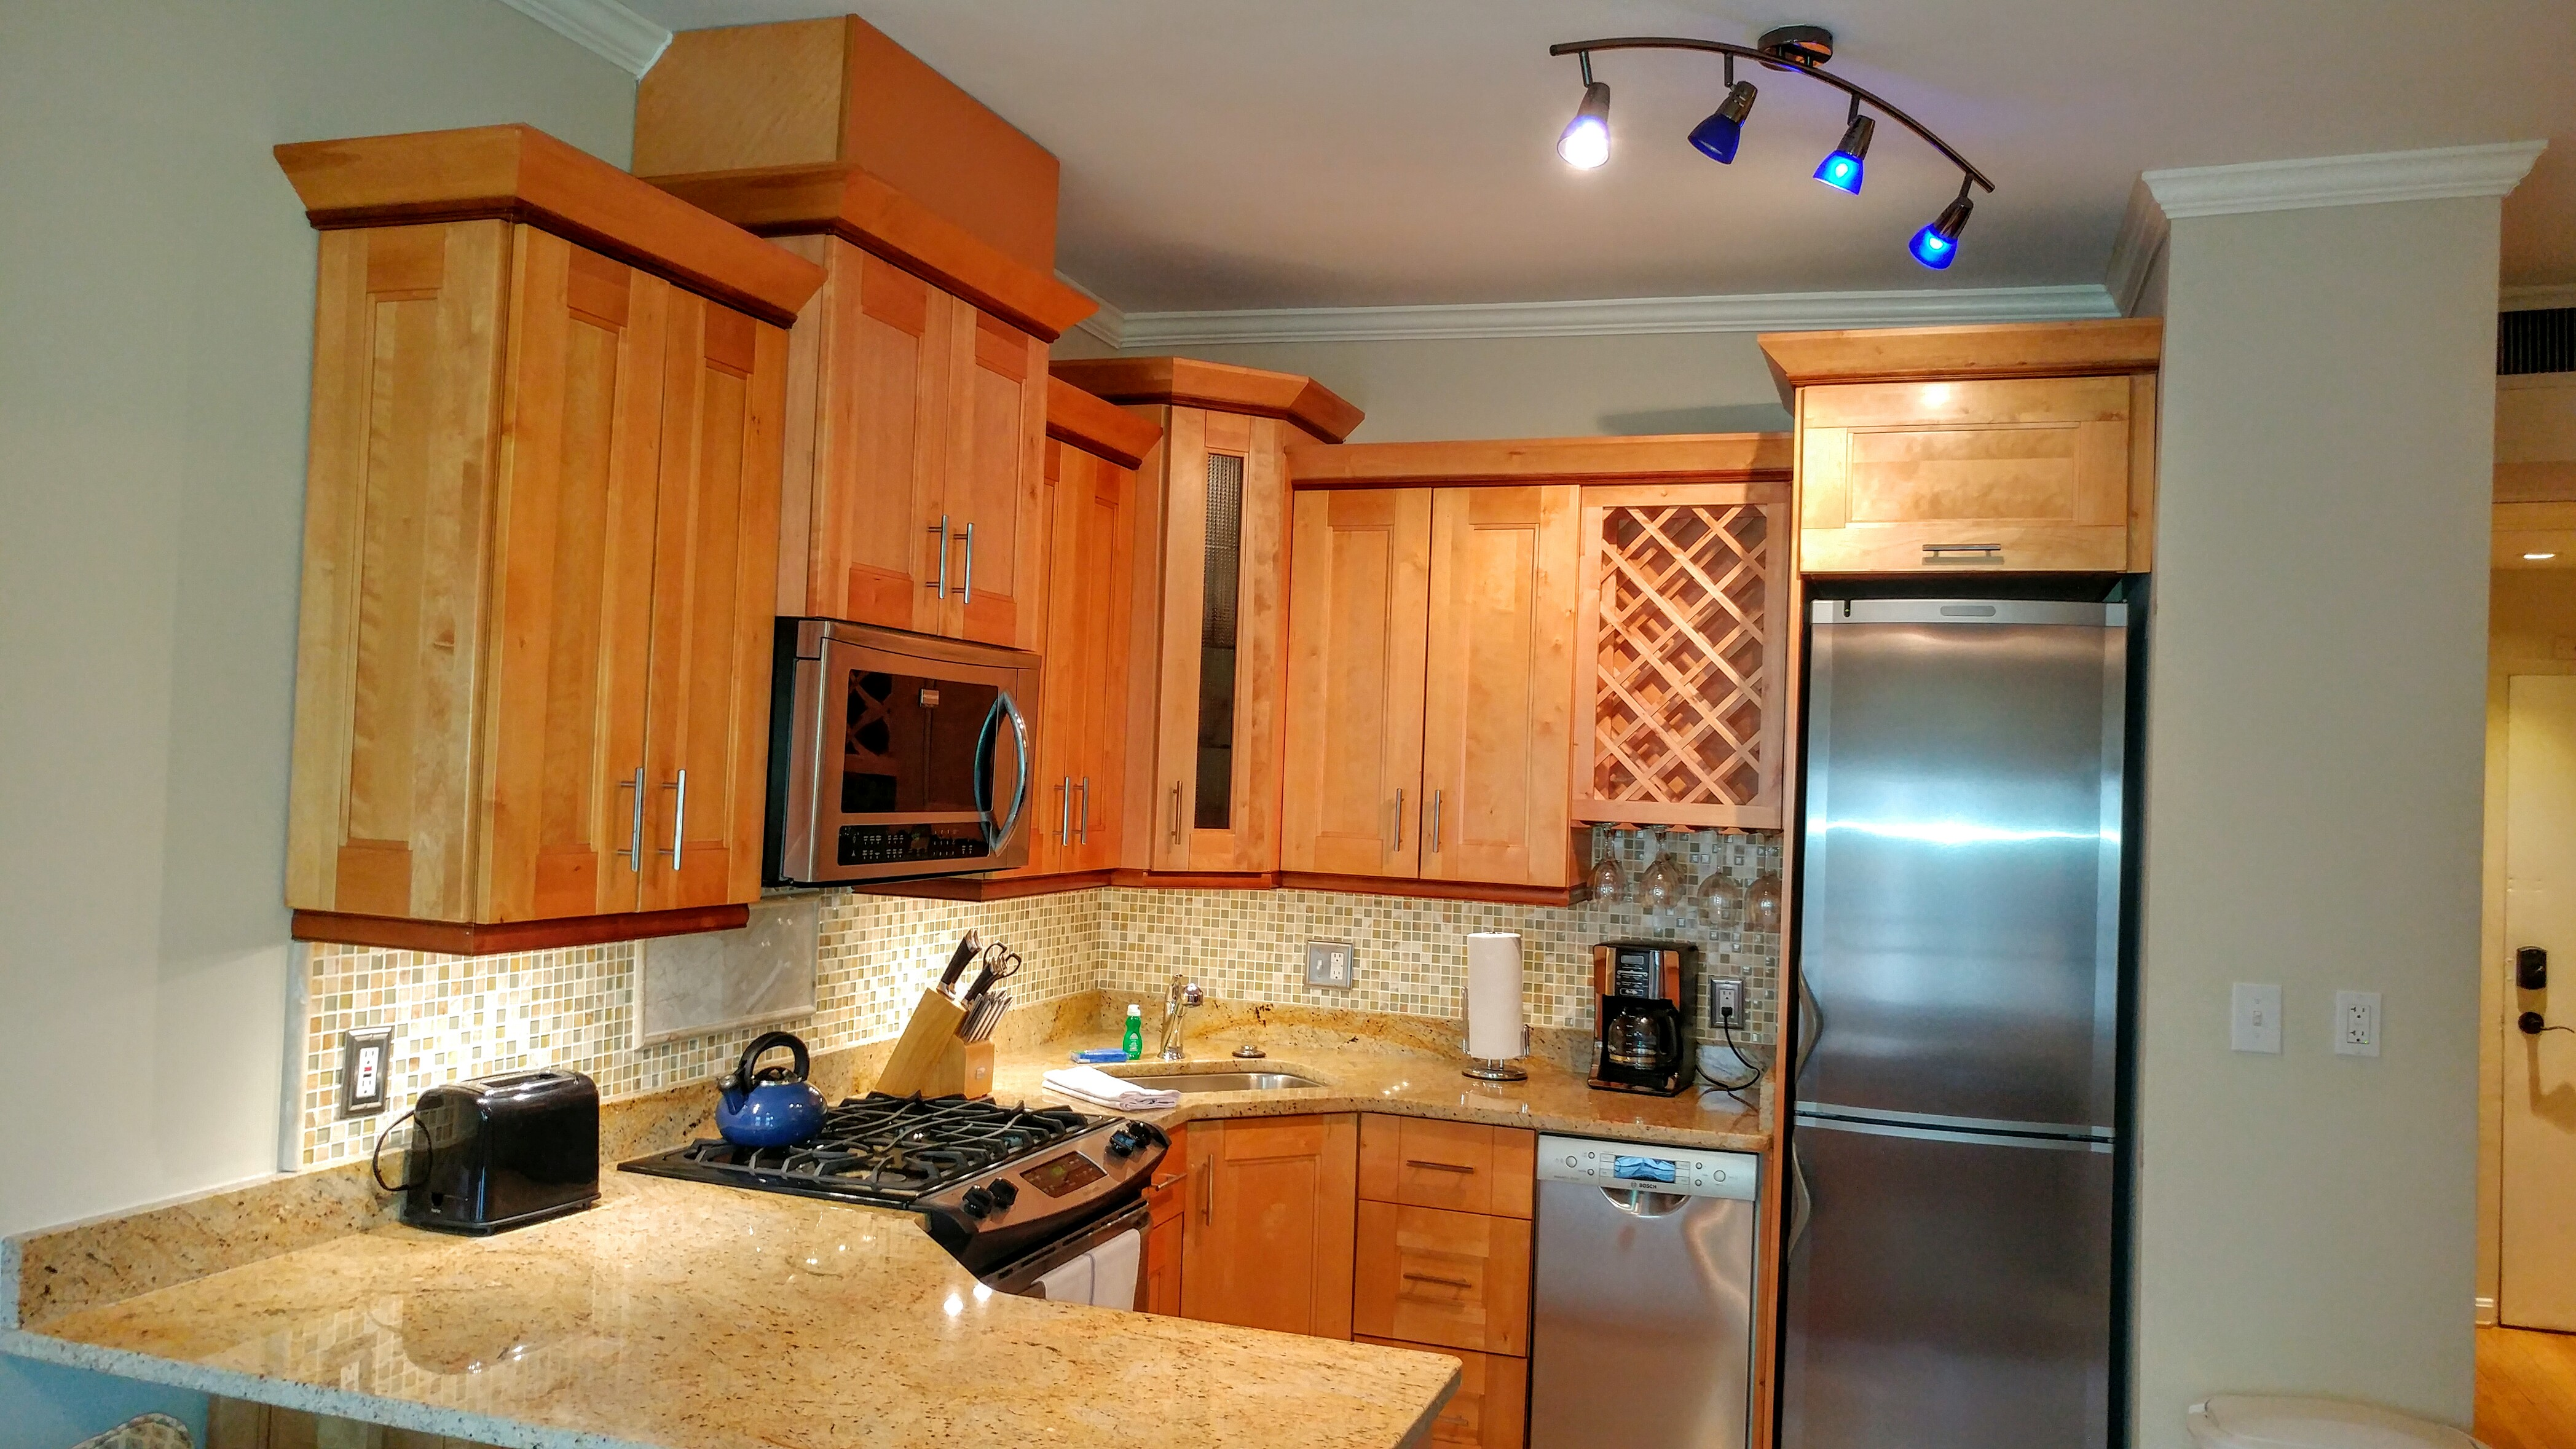 Great Kitchen Capitol Hill Stay Temporary Lodging On Capitol Hill Washington Dc